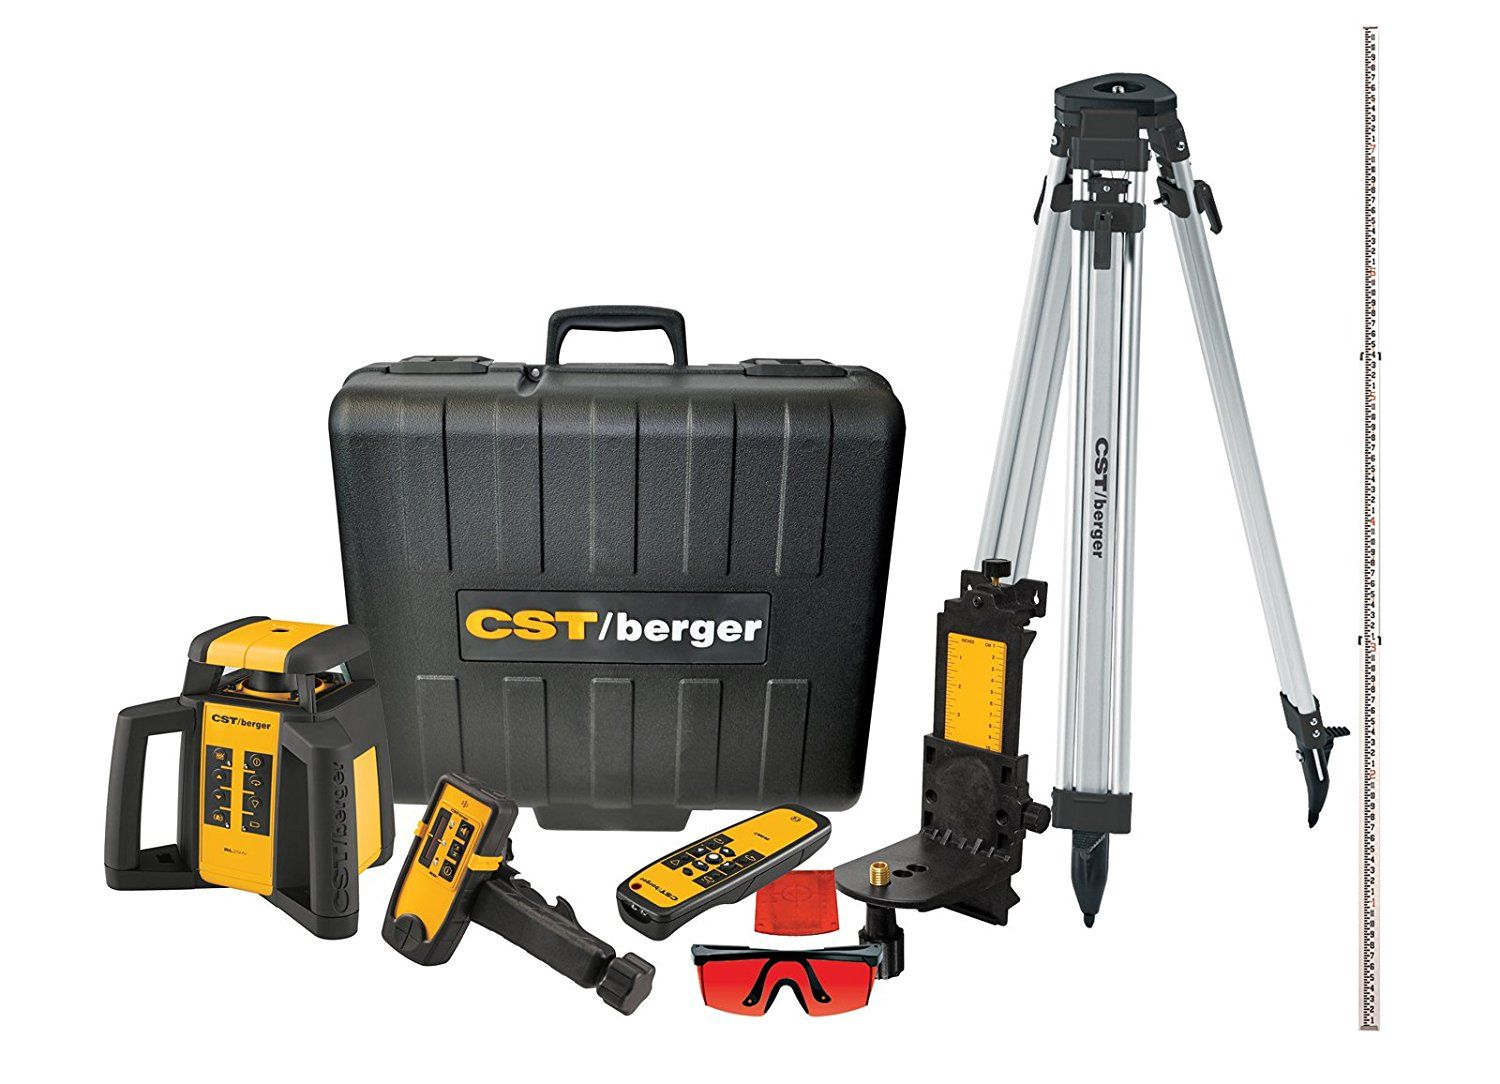 Top 5 Best Rotary Laser Levels [Review of 2020] Tools